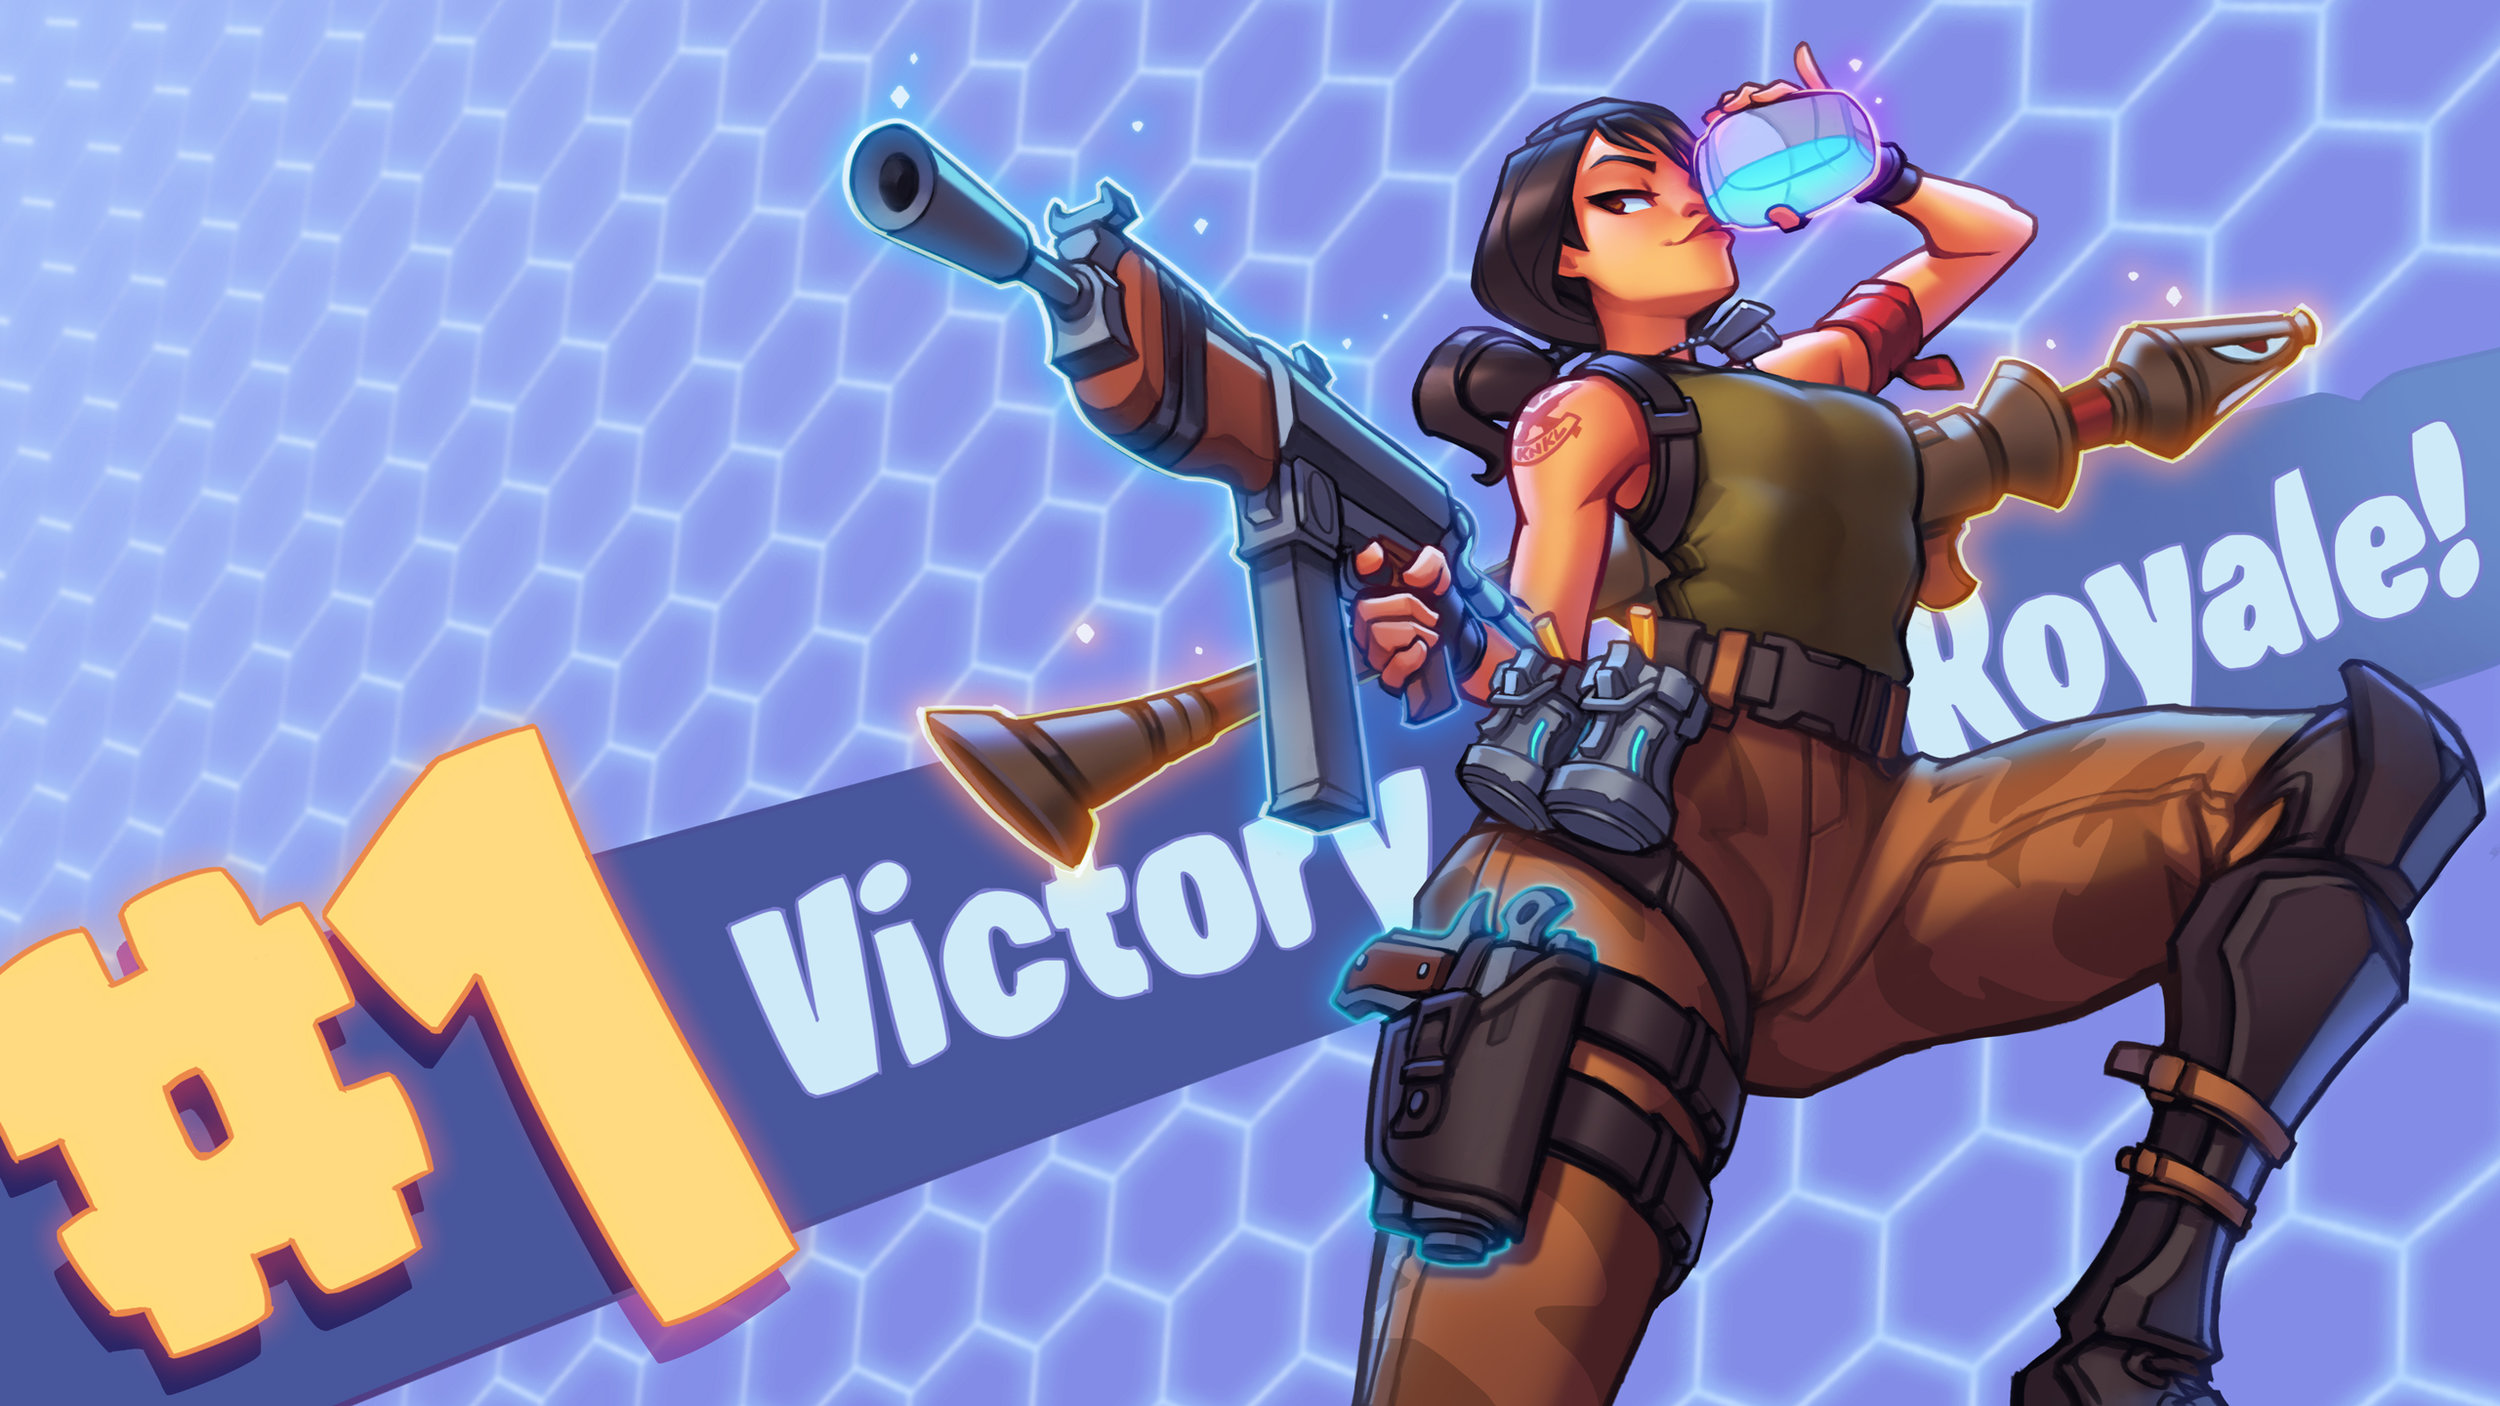 fortnite___2018_victory_royale___youtube___by_knkl-dbylohy.jpg